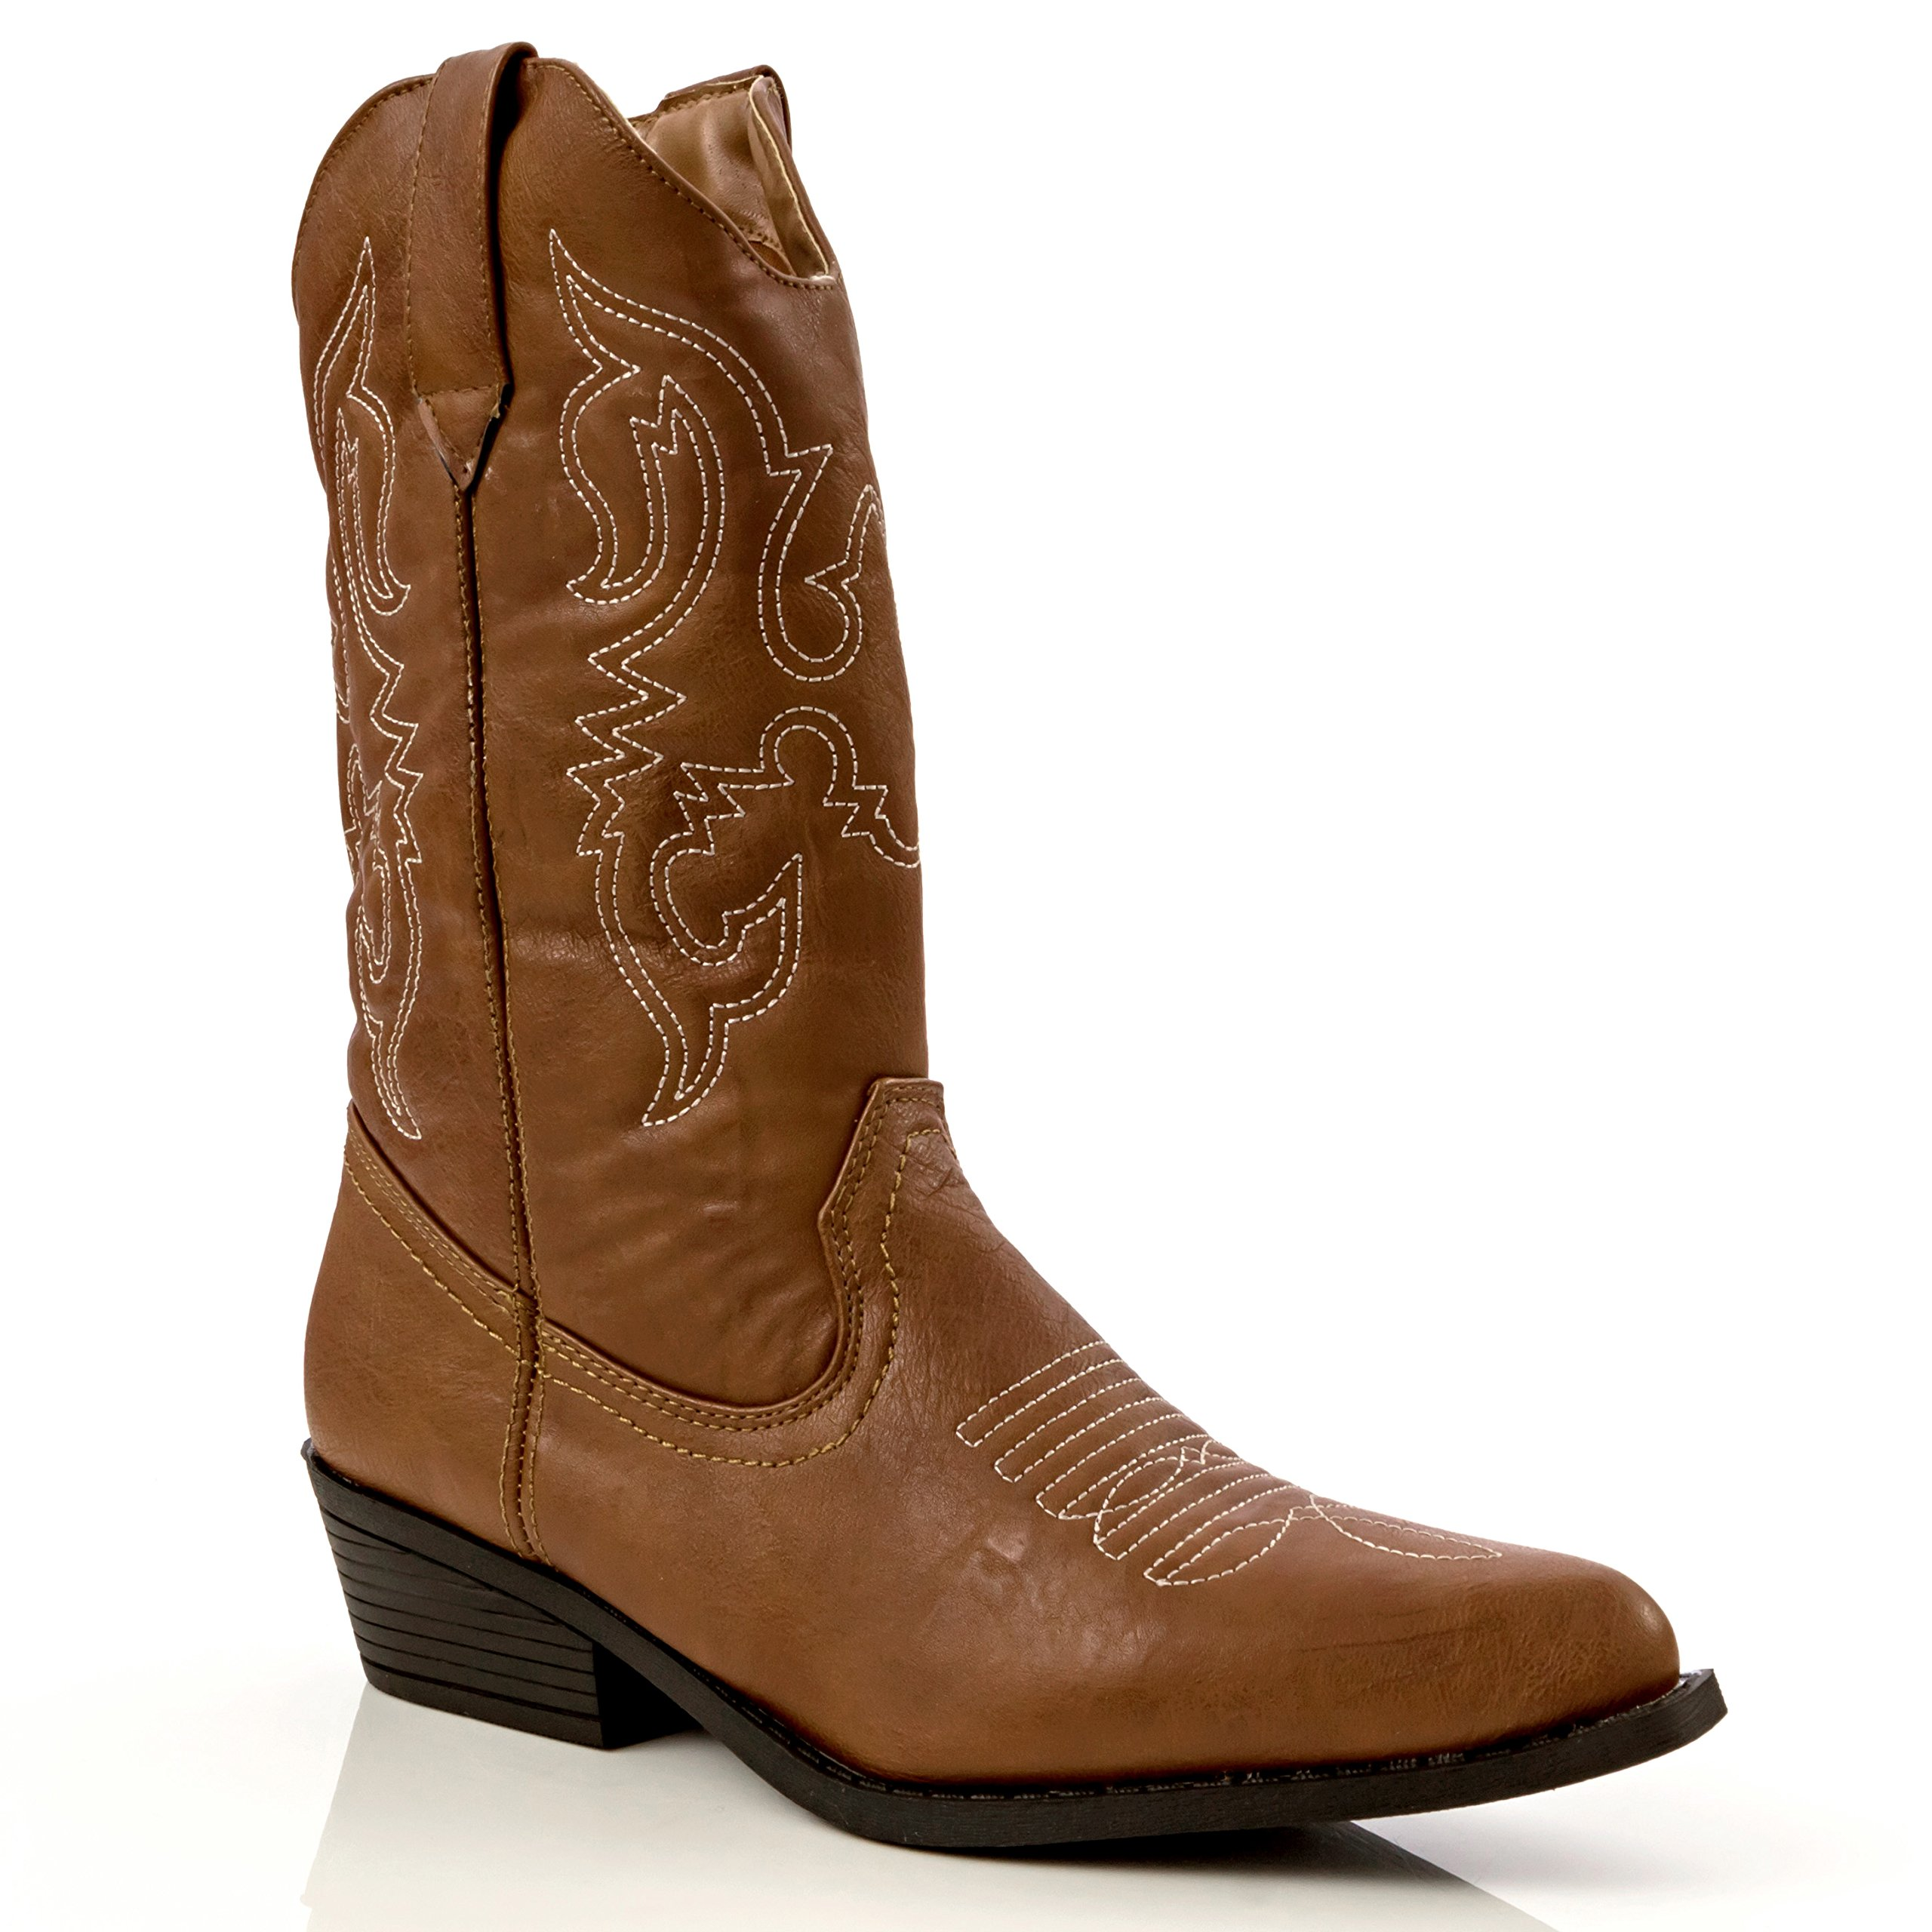 Charles Albert Women's Western Style Embroidered Cowboy Boot in Cognac Size: 6 by Charles Albert (Image #1)